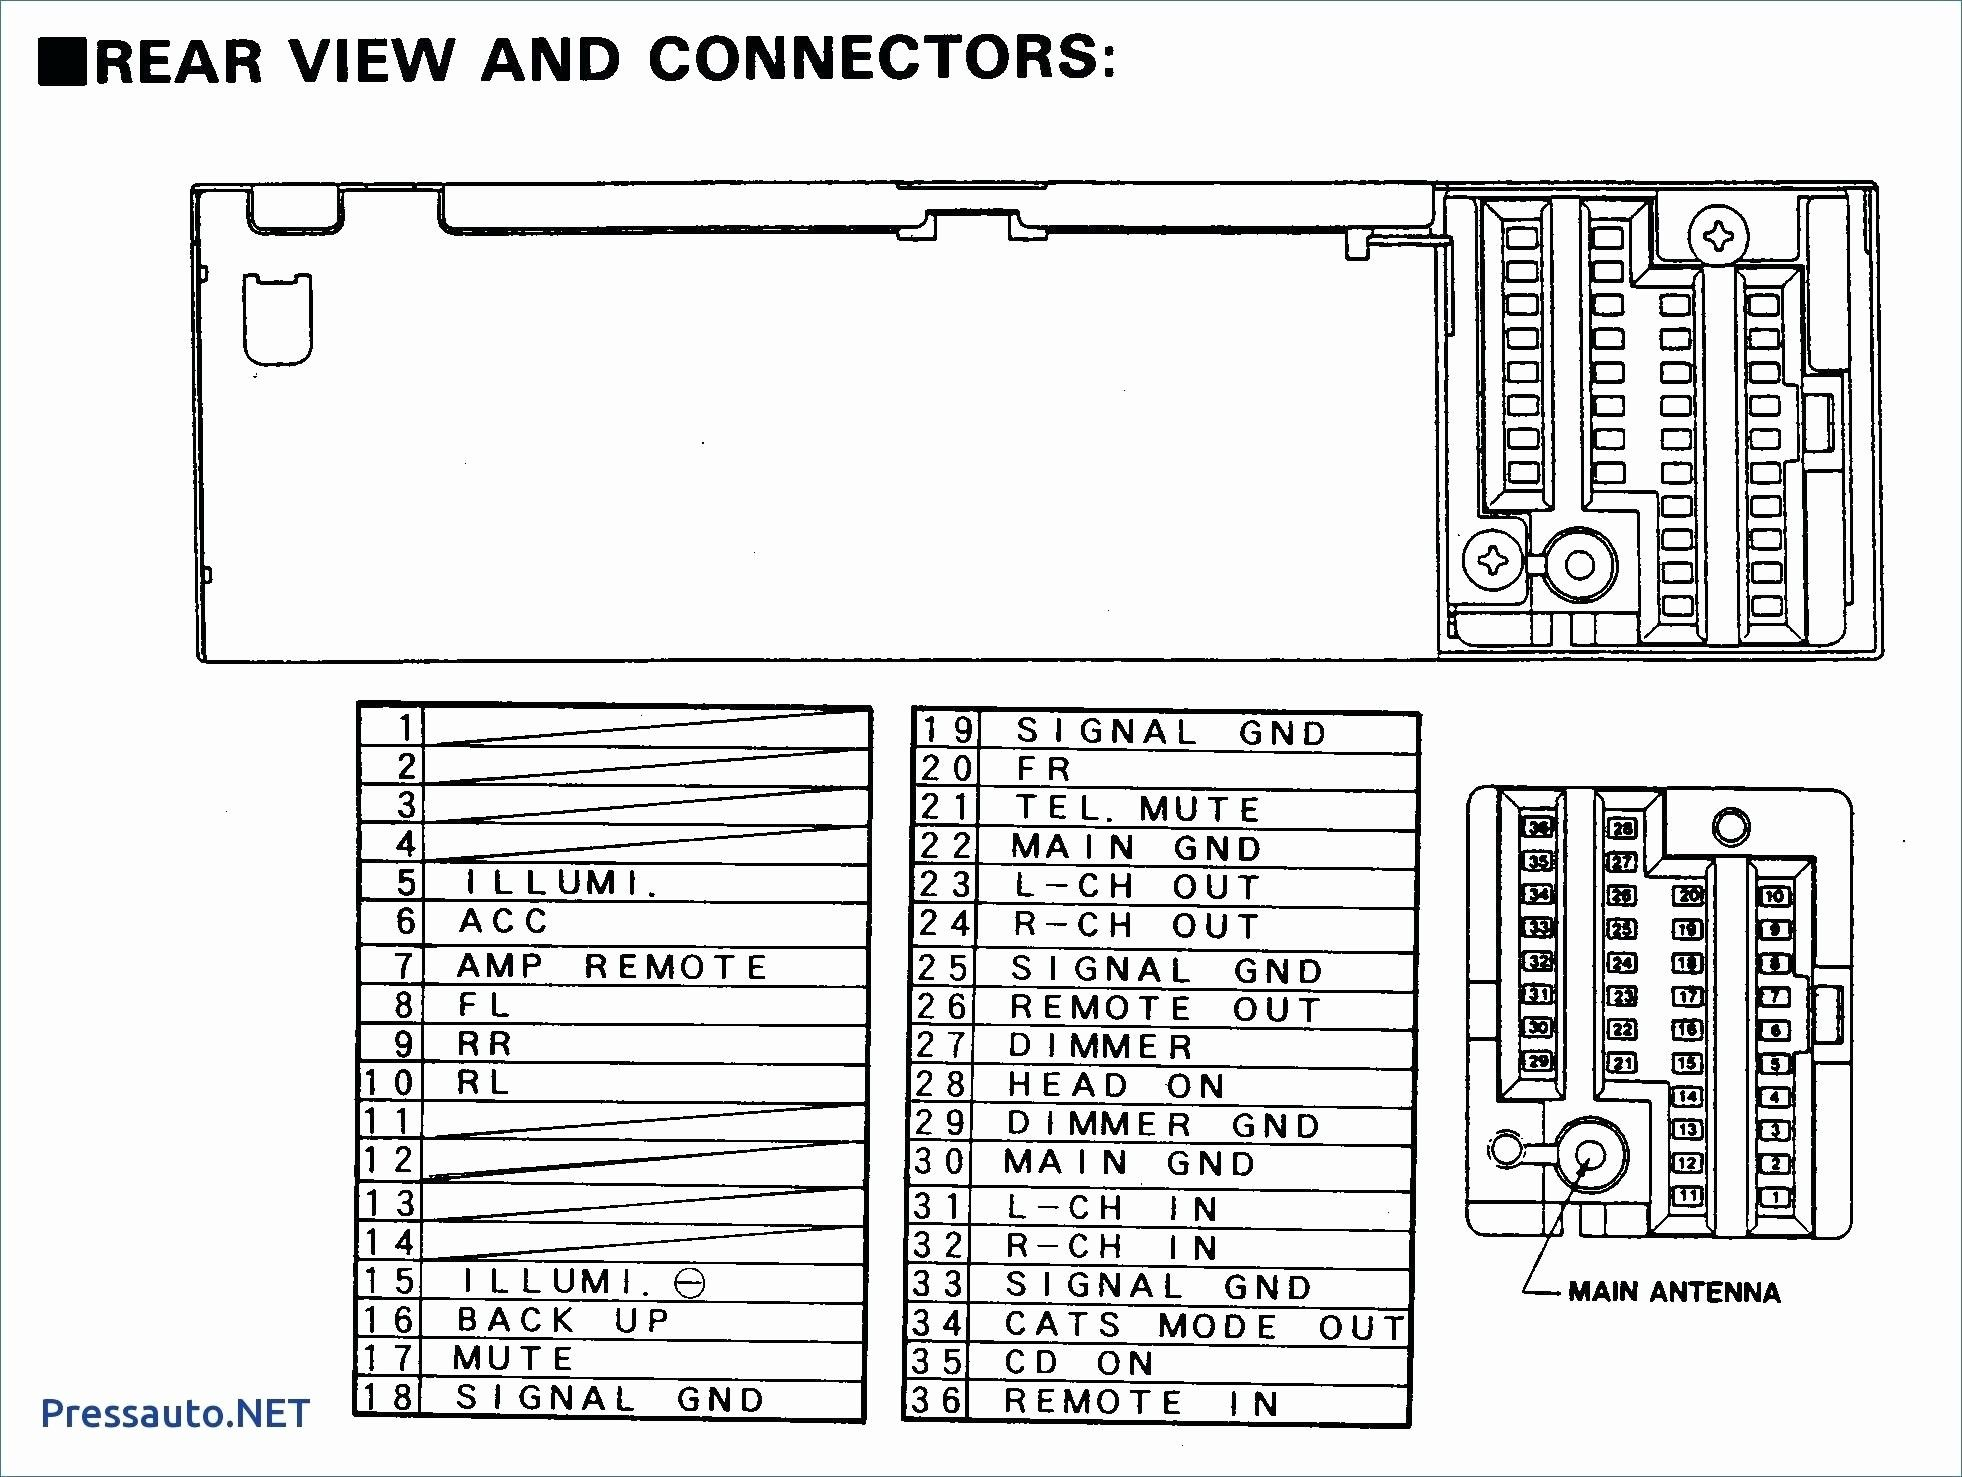 Toyota Fujitsu Ten Wiring Diagram Awesome In 2020 Diagram Design Diagram Car Stereo